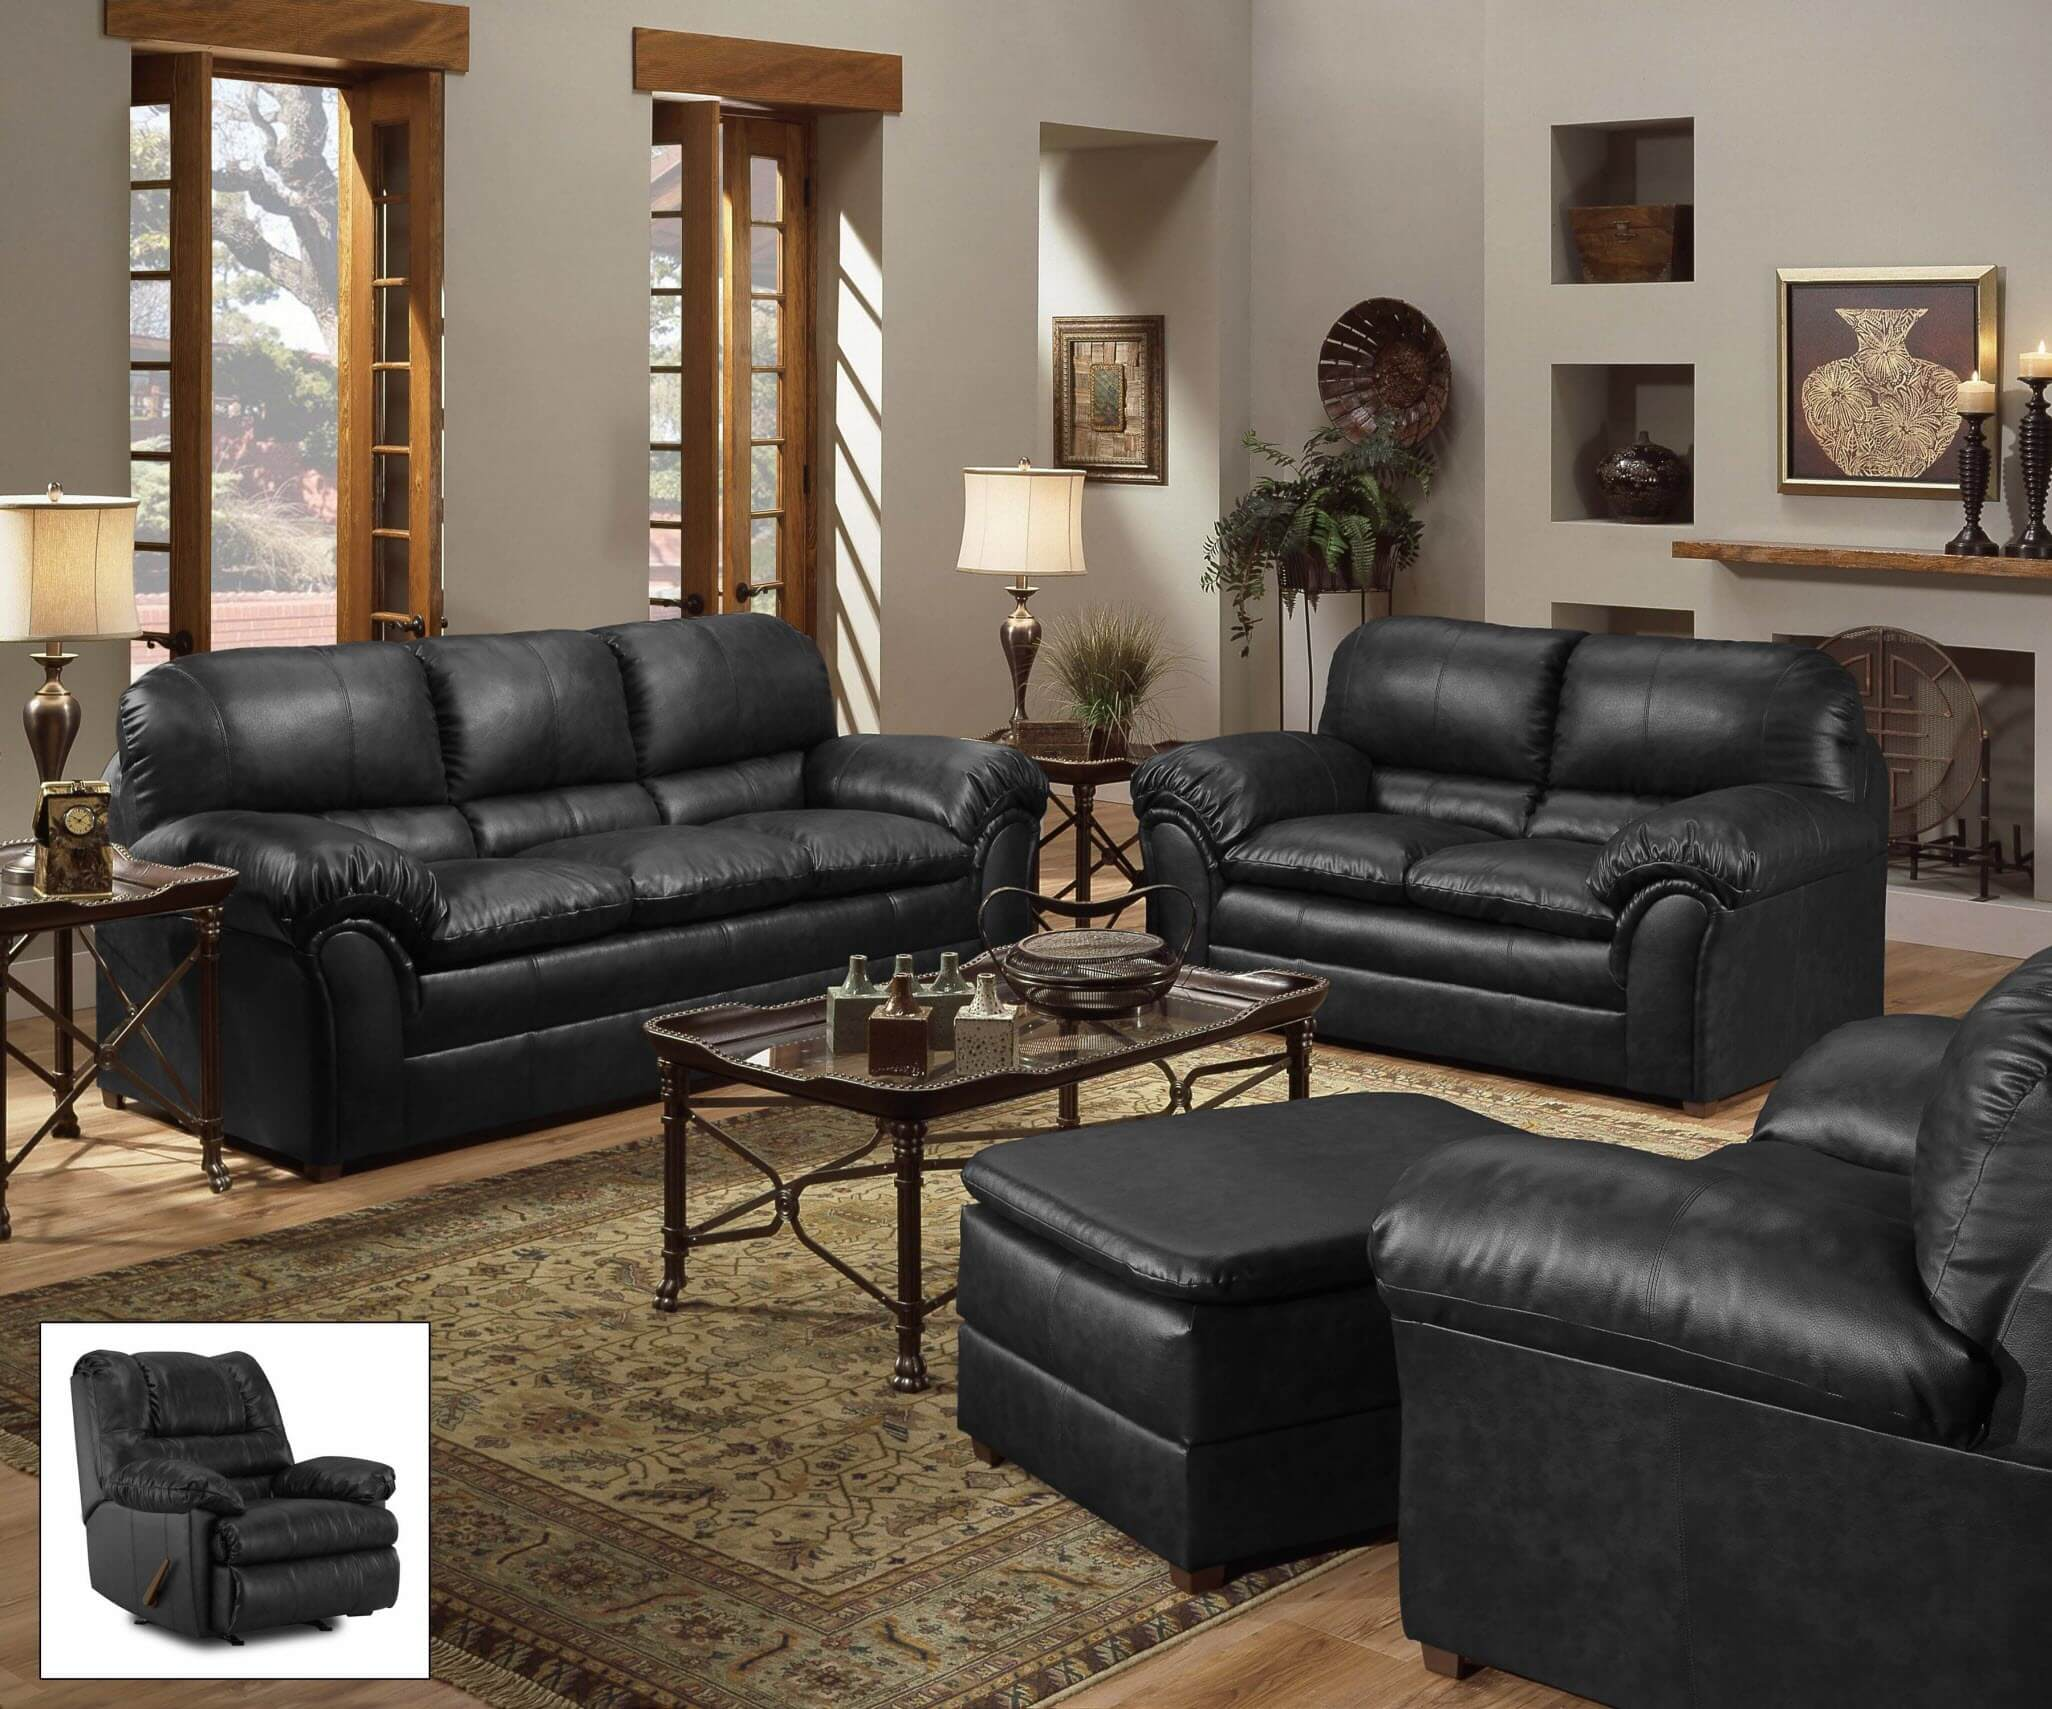 Simmons Living Room Set. Fabric Living Room Sets Geneva Onyx Sofa and Loveseat